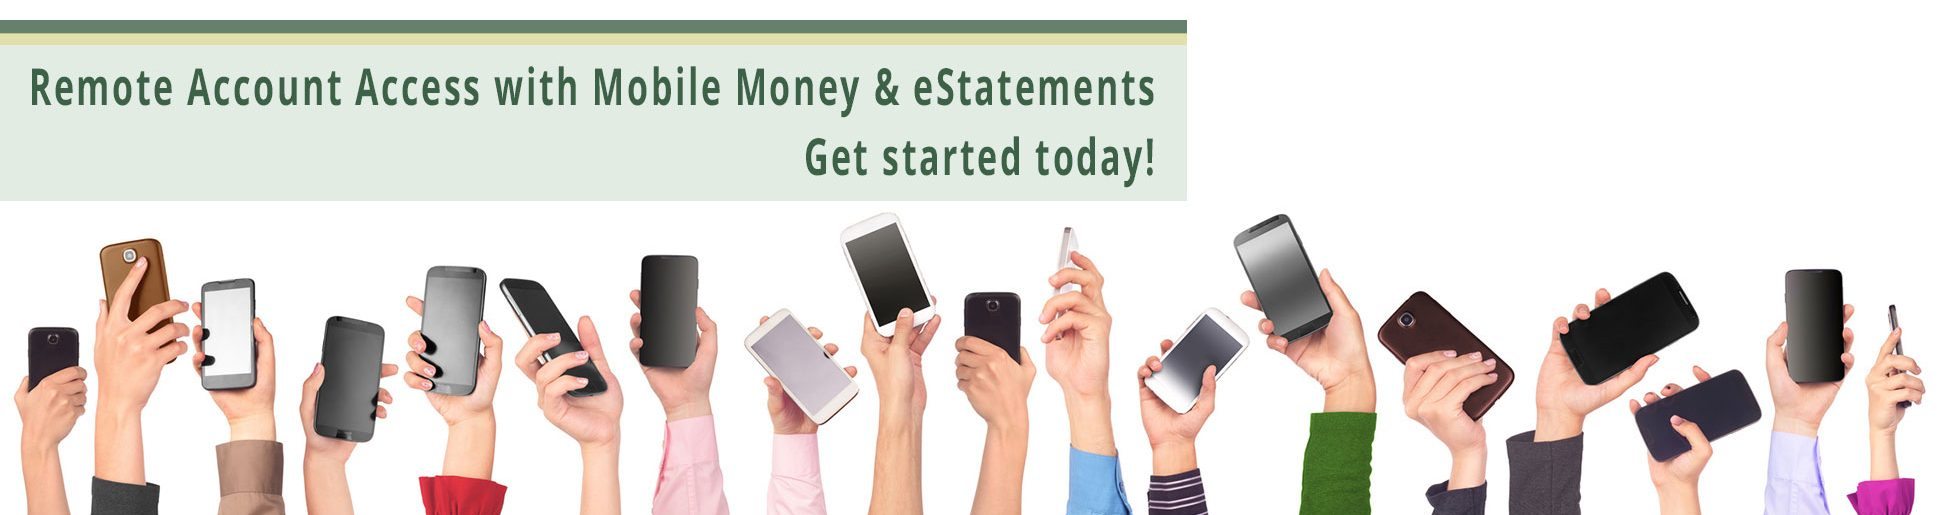 Remote Account Access with Mobile Money & eStatements - Get started today!